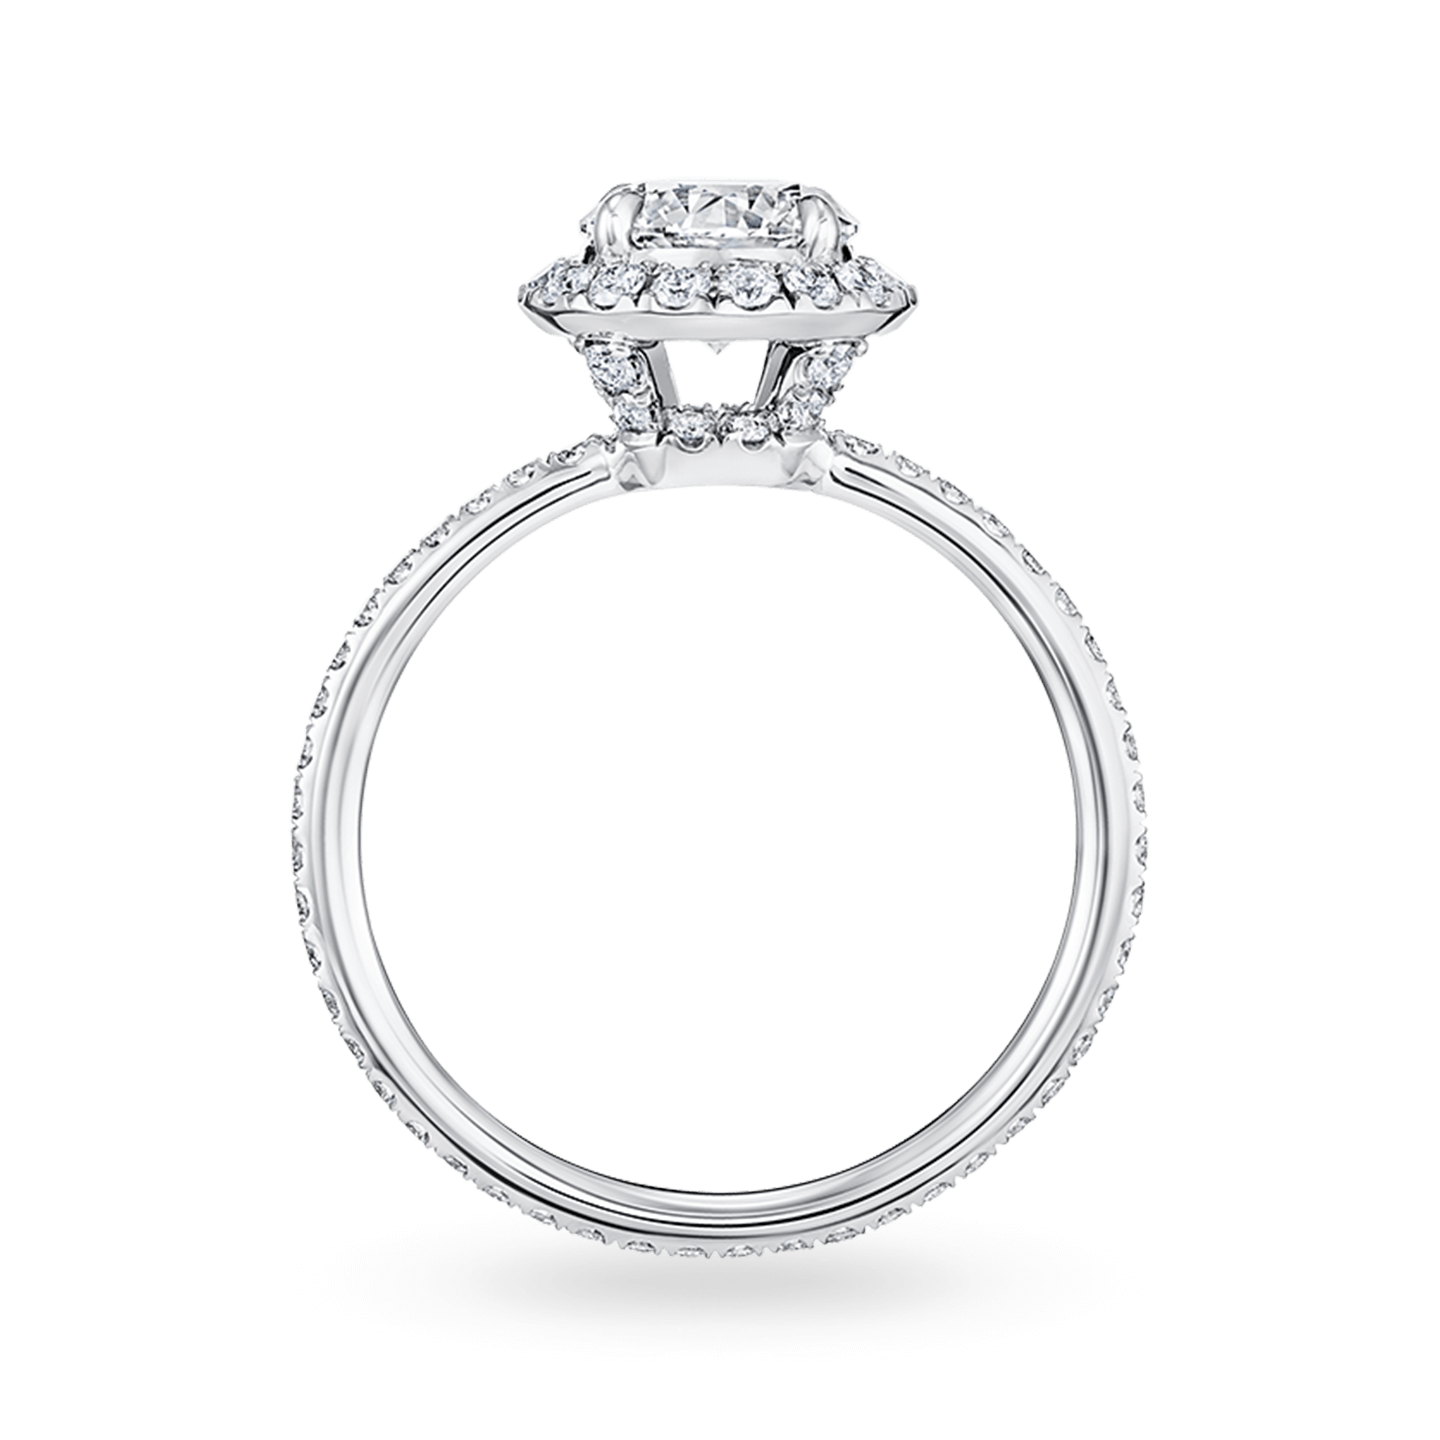 The One Round Brilliant Diamond Micropavé Engagement Ring, Product Image 2